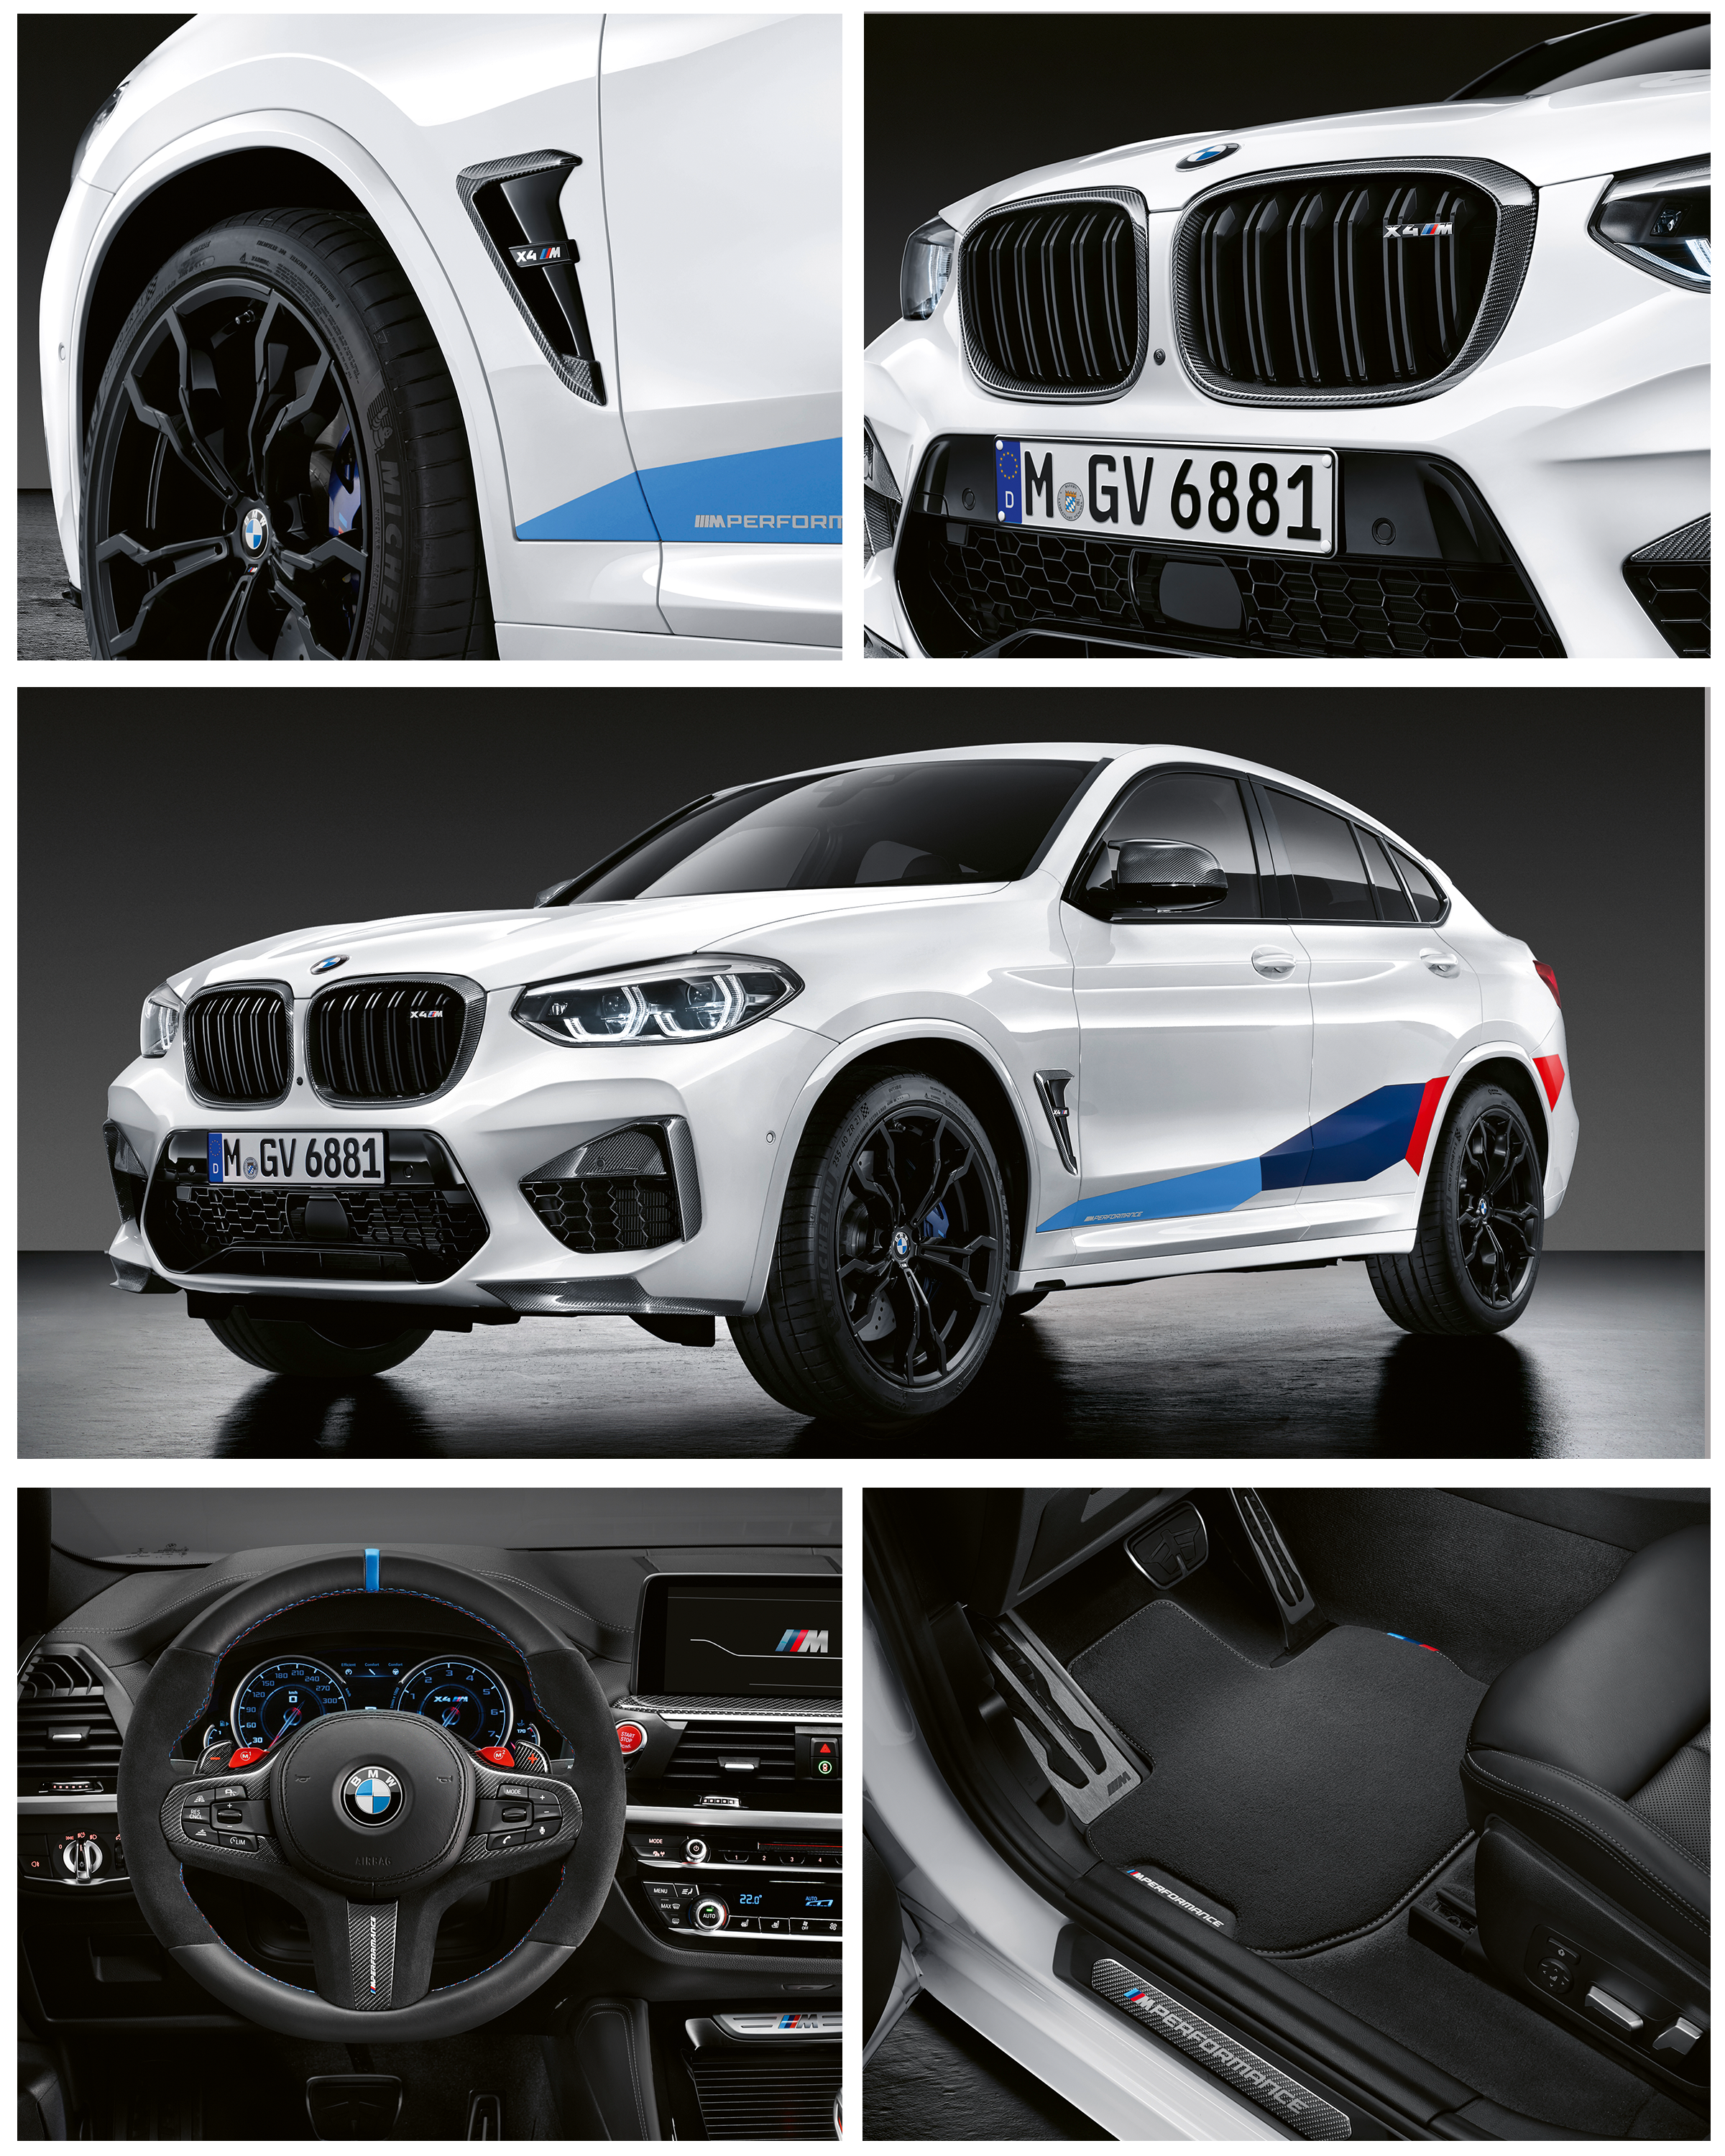 2020 Bmw X3 M And Bmw X4 M With M Performance Parts Dailyrevs